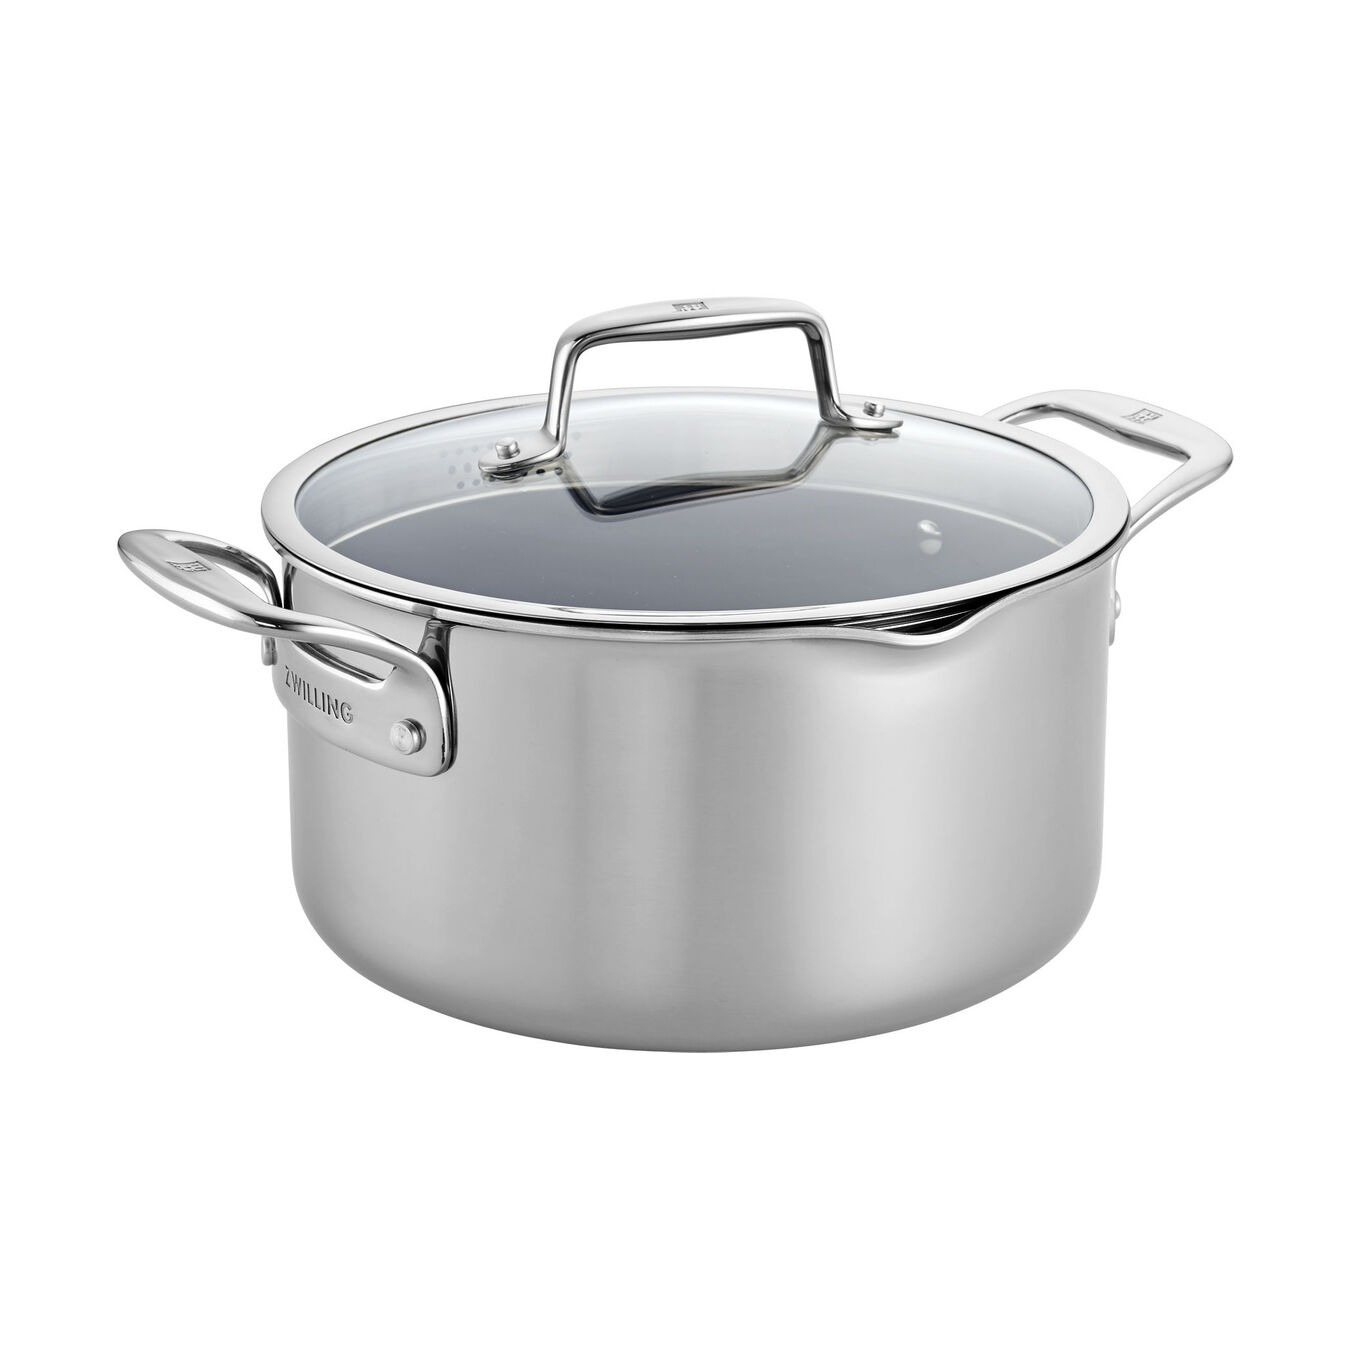 6 qt, Non-stick, Stainless Steel Ceramic Dutch Oven ,,large 1